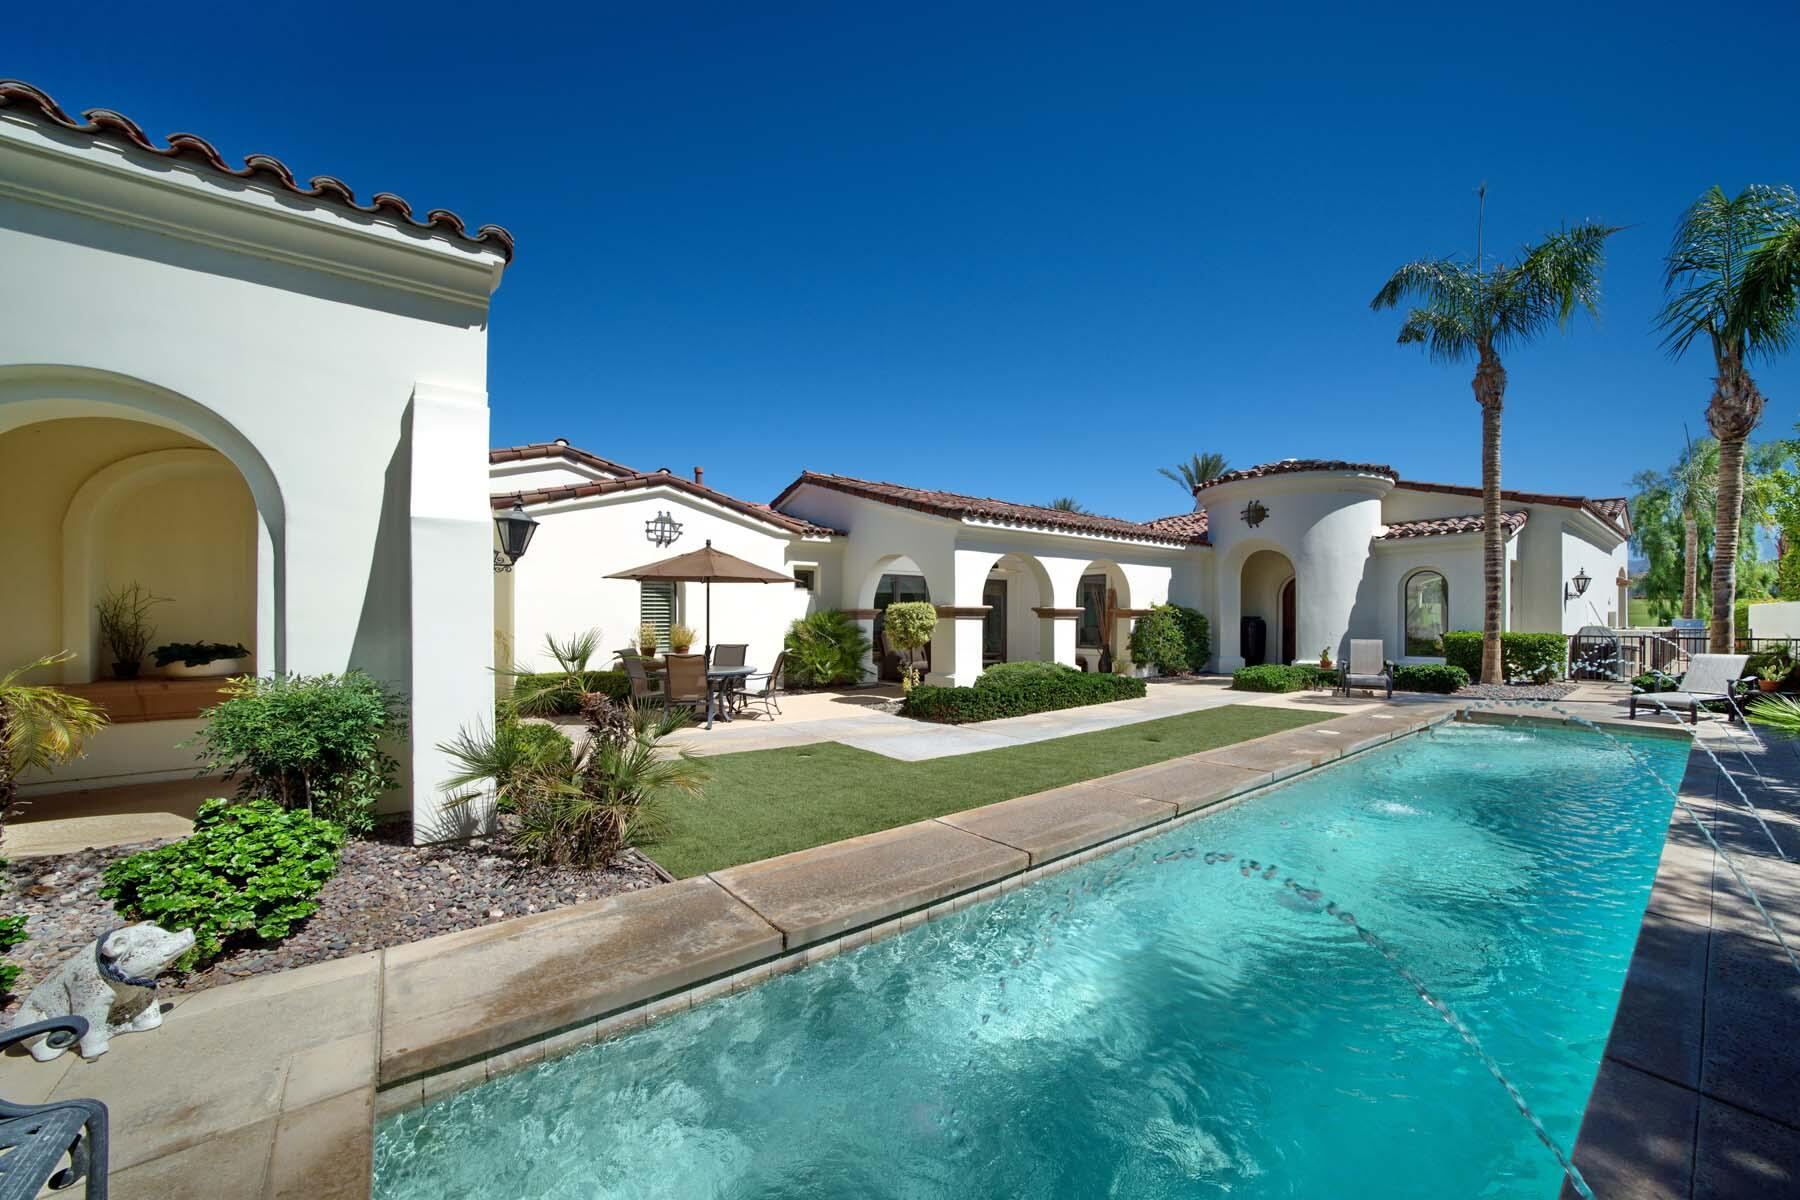 This double-pool desert retreat awaits behind the gates of Toscana Country Club. The sizable lap pool with water features in the courtyard offers a sunny sanctuary for leisure or a brisk workout from the comfort of your home. With stunning views of the Jack Nicklaus Signature Golf Course, the pool-sized spa in the backyard with waterfall grants relaxing room for entertaining guests.  Inside, custom built-ins with recessed LED lighting - both in the great room and master bedroom, two sets of floor-to-ceiling sliding glass doors, and the light and bright colors are just a handful of finishes that make this Early California home stylishly contemporary. The gourmet kitchen features expansive granite countertop space with breakfast bar and separate island, as well as cabinet panel-matched refrigerator and top-of-the-line stainless steel appliances.  Escape to the master bedroom with luxurious en-suite bath showcasing a large soaking tub, while guests can retire to either of the guest rooms, each with their own en-suite.